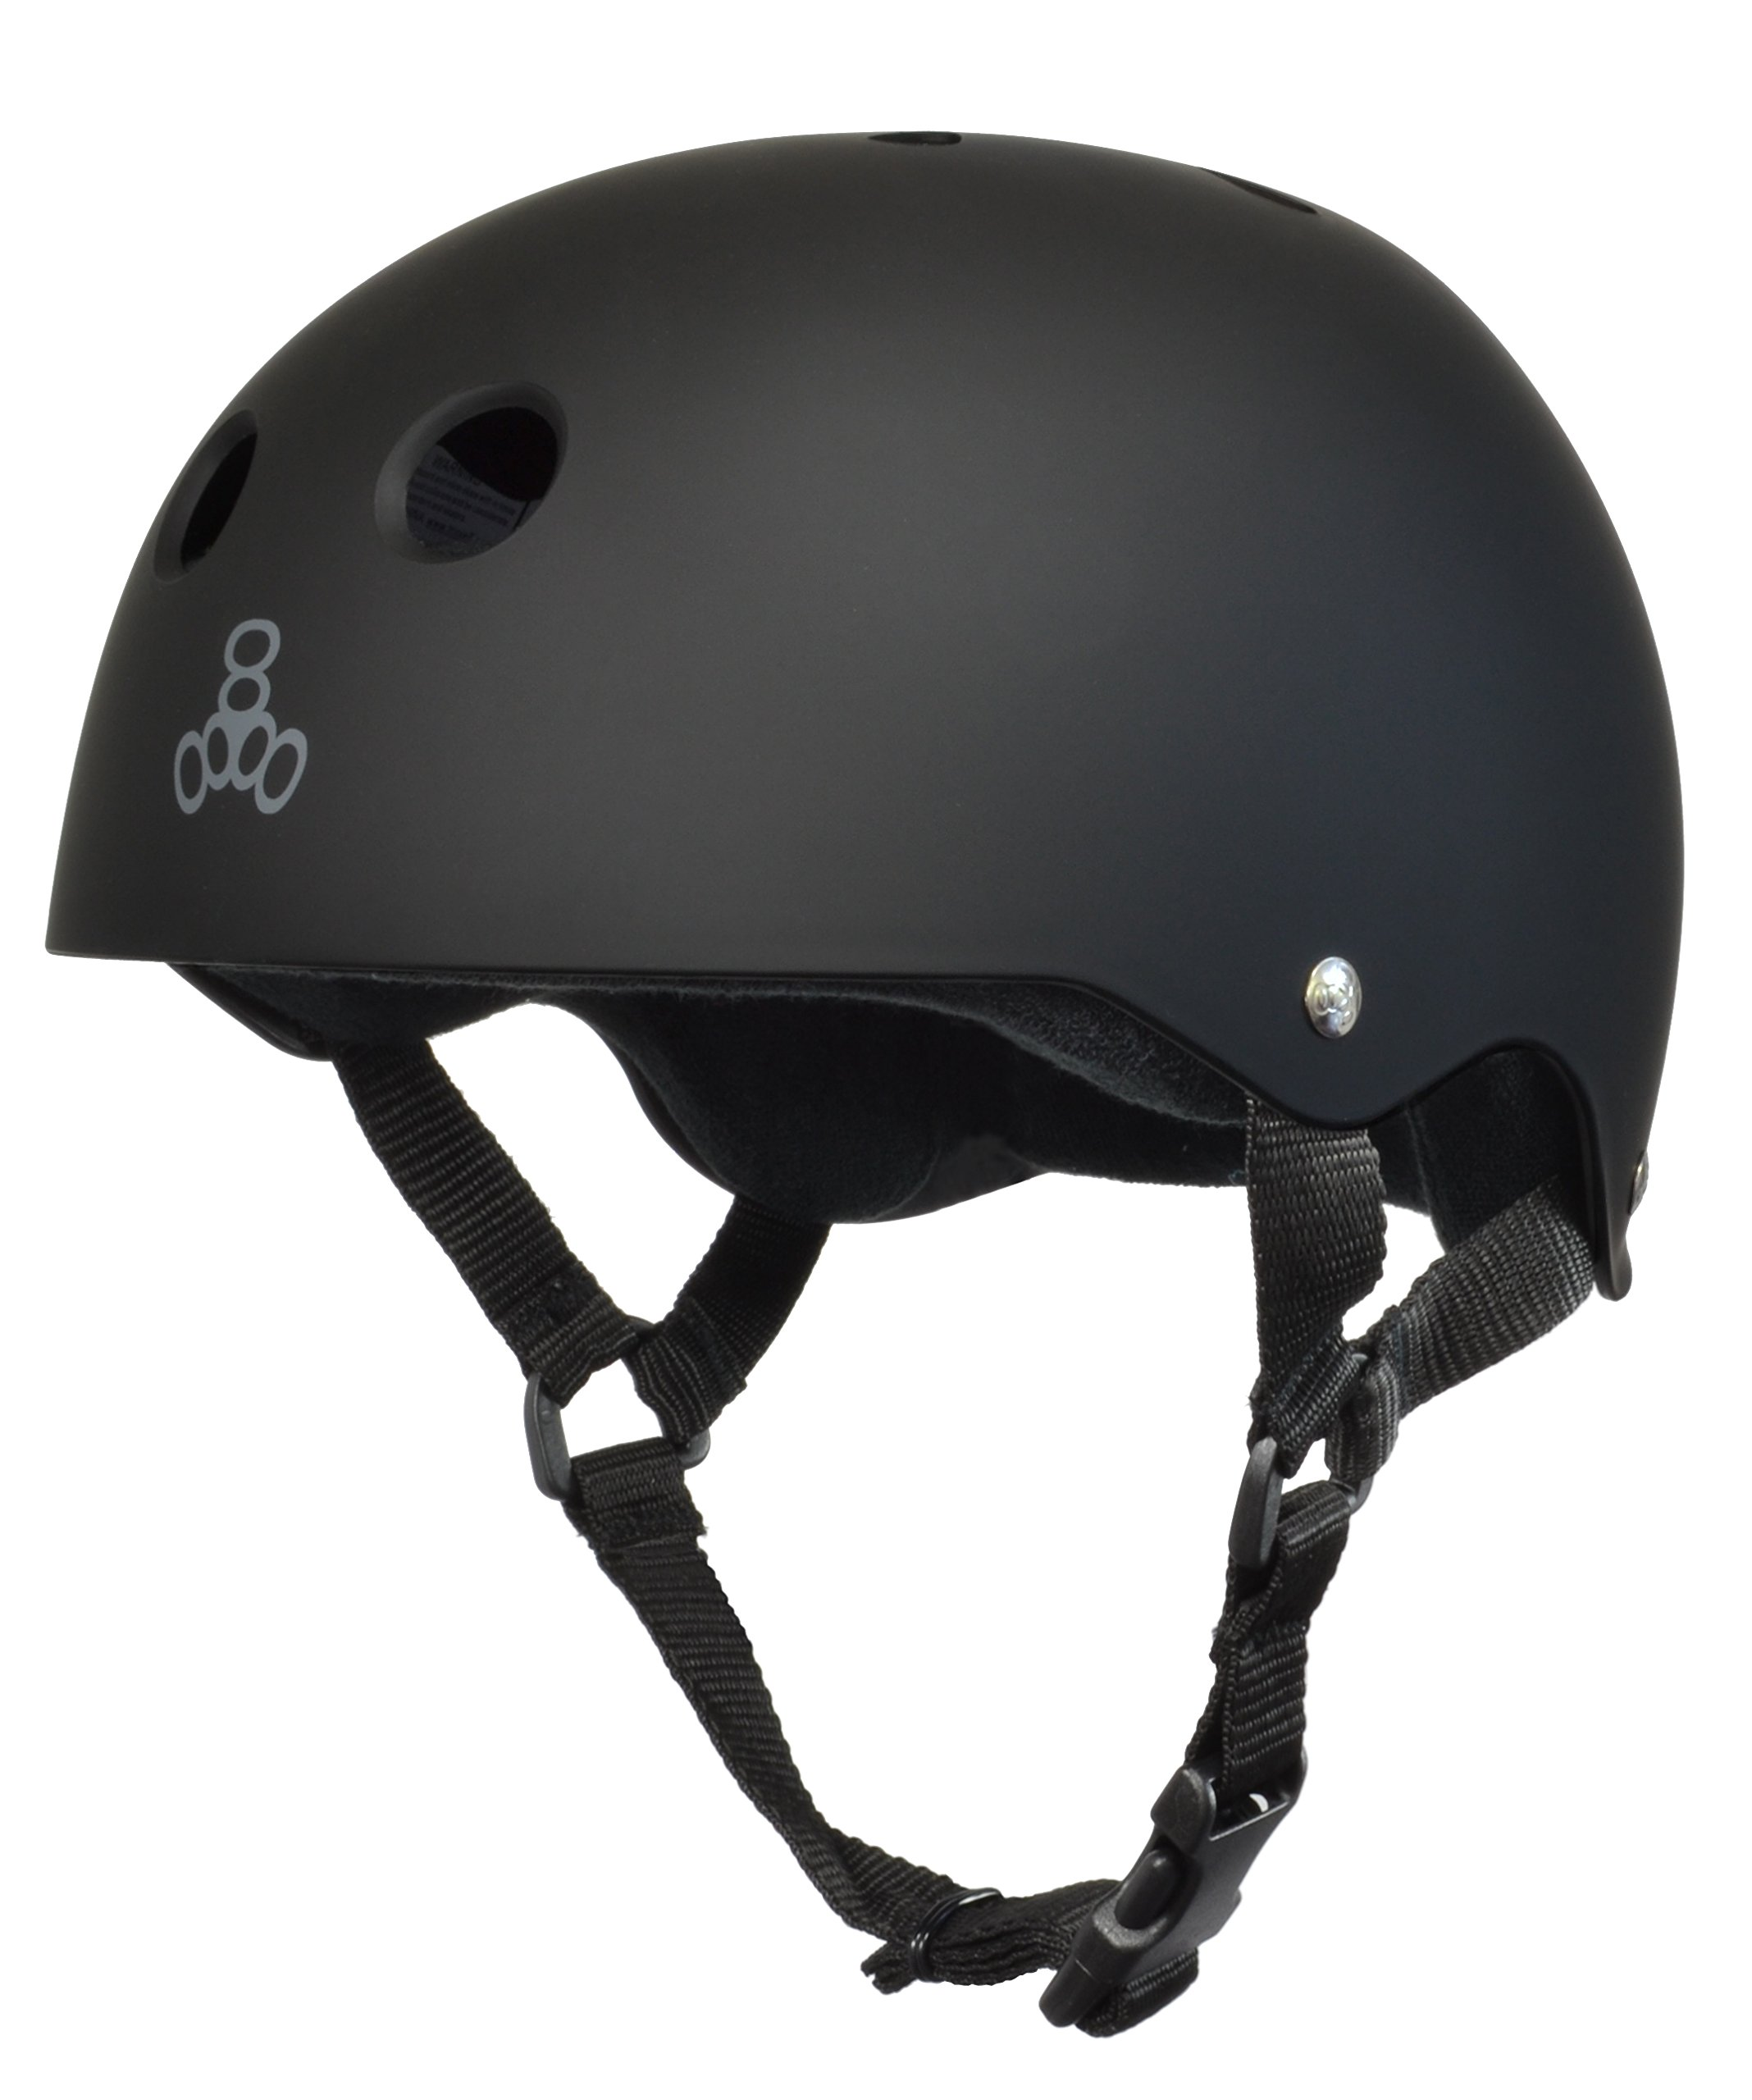 Triple Eight Helmet with Sweatsaver Liner, Black Rubber/Black, X-Large